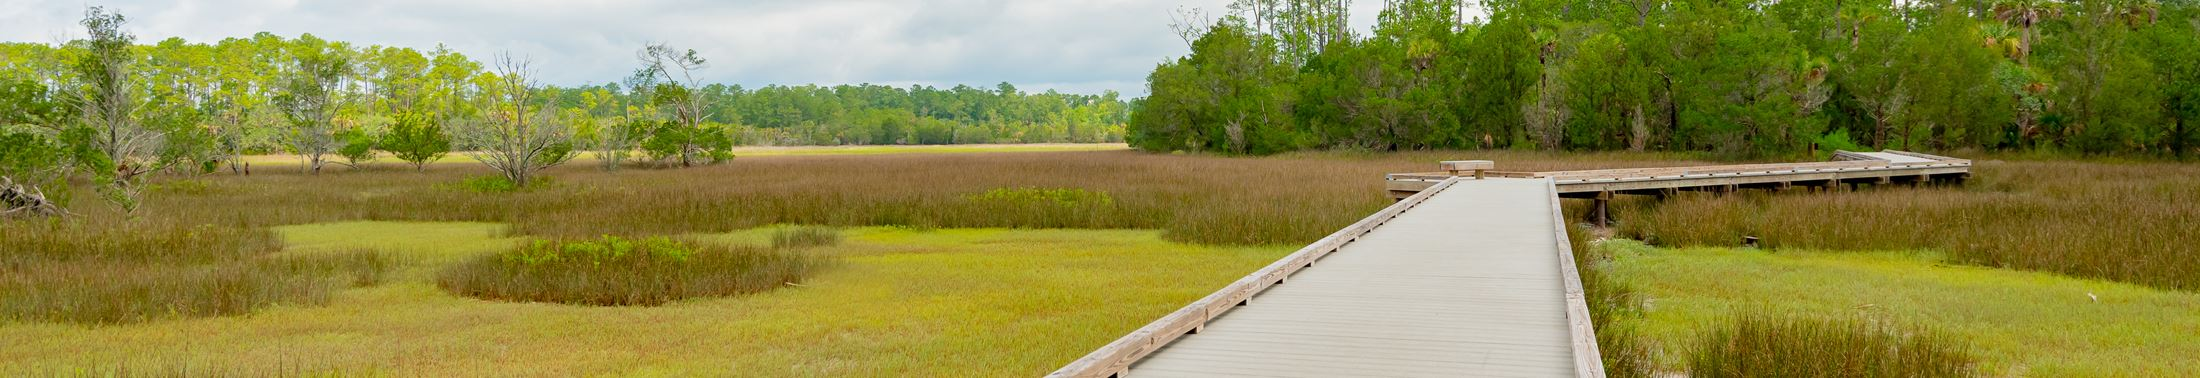 The boardwalk over the marsh at Palmetto Islands County Park